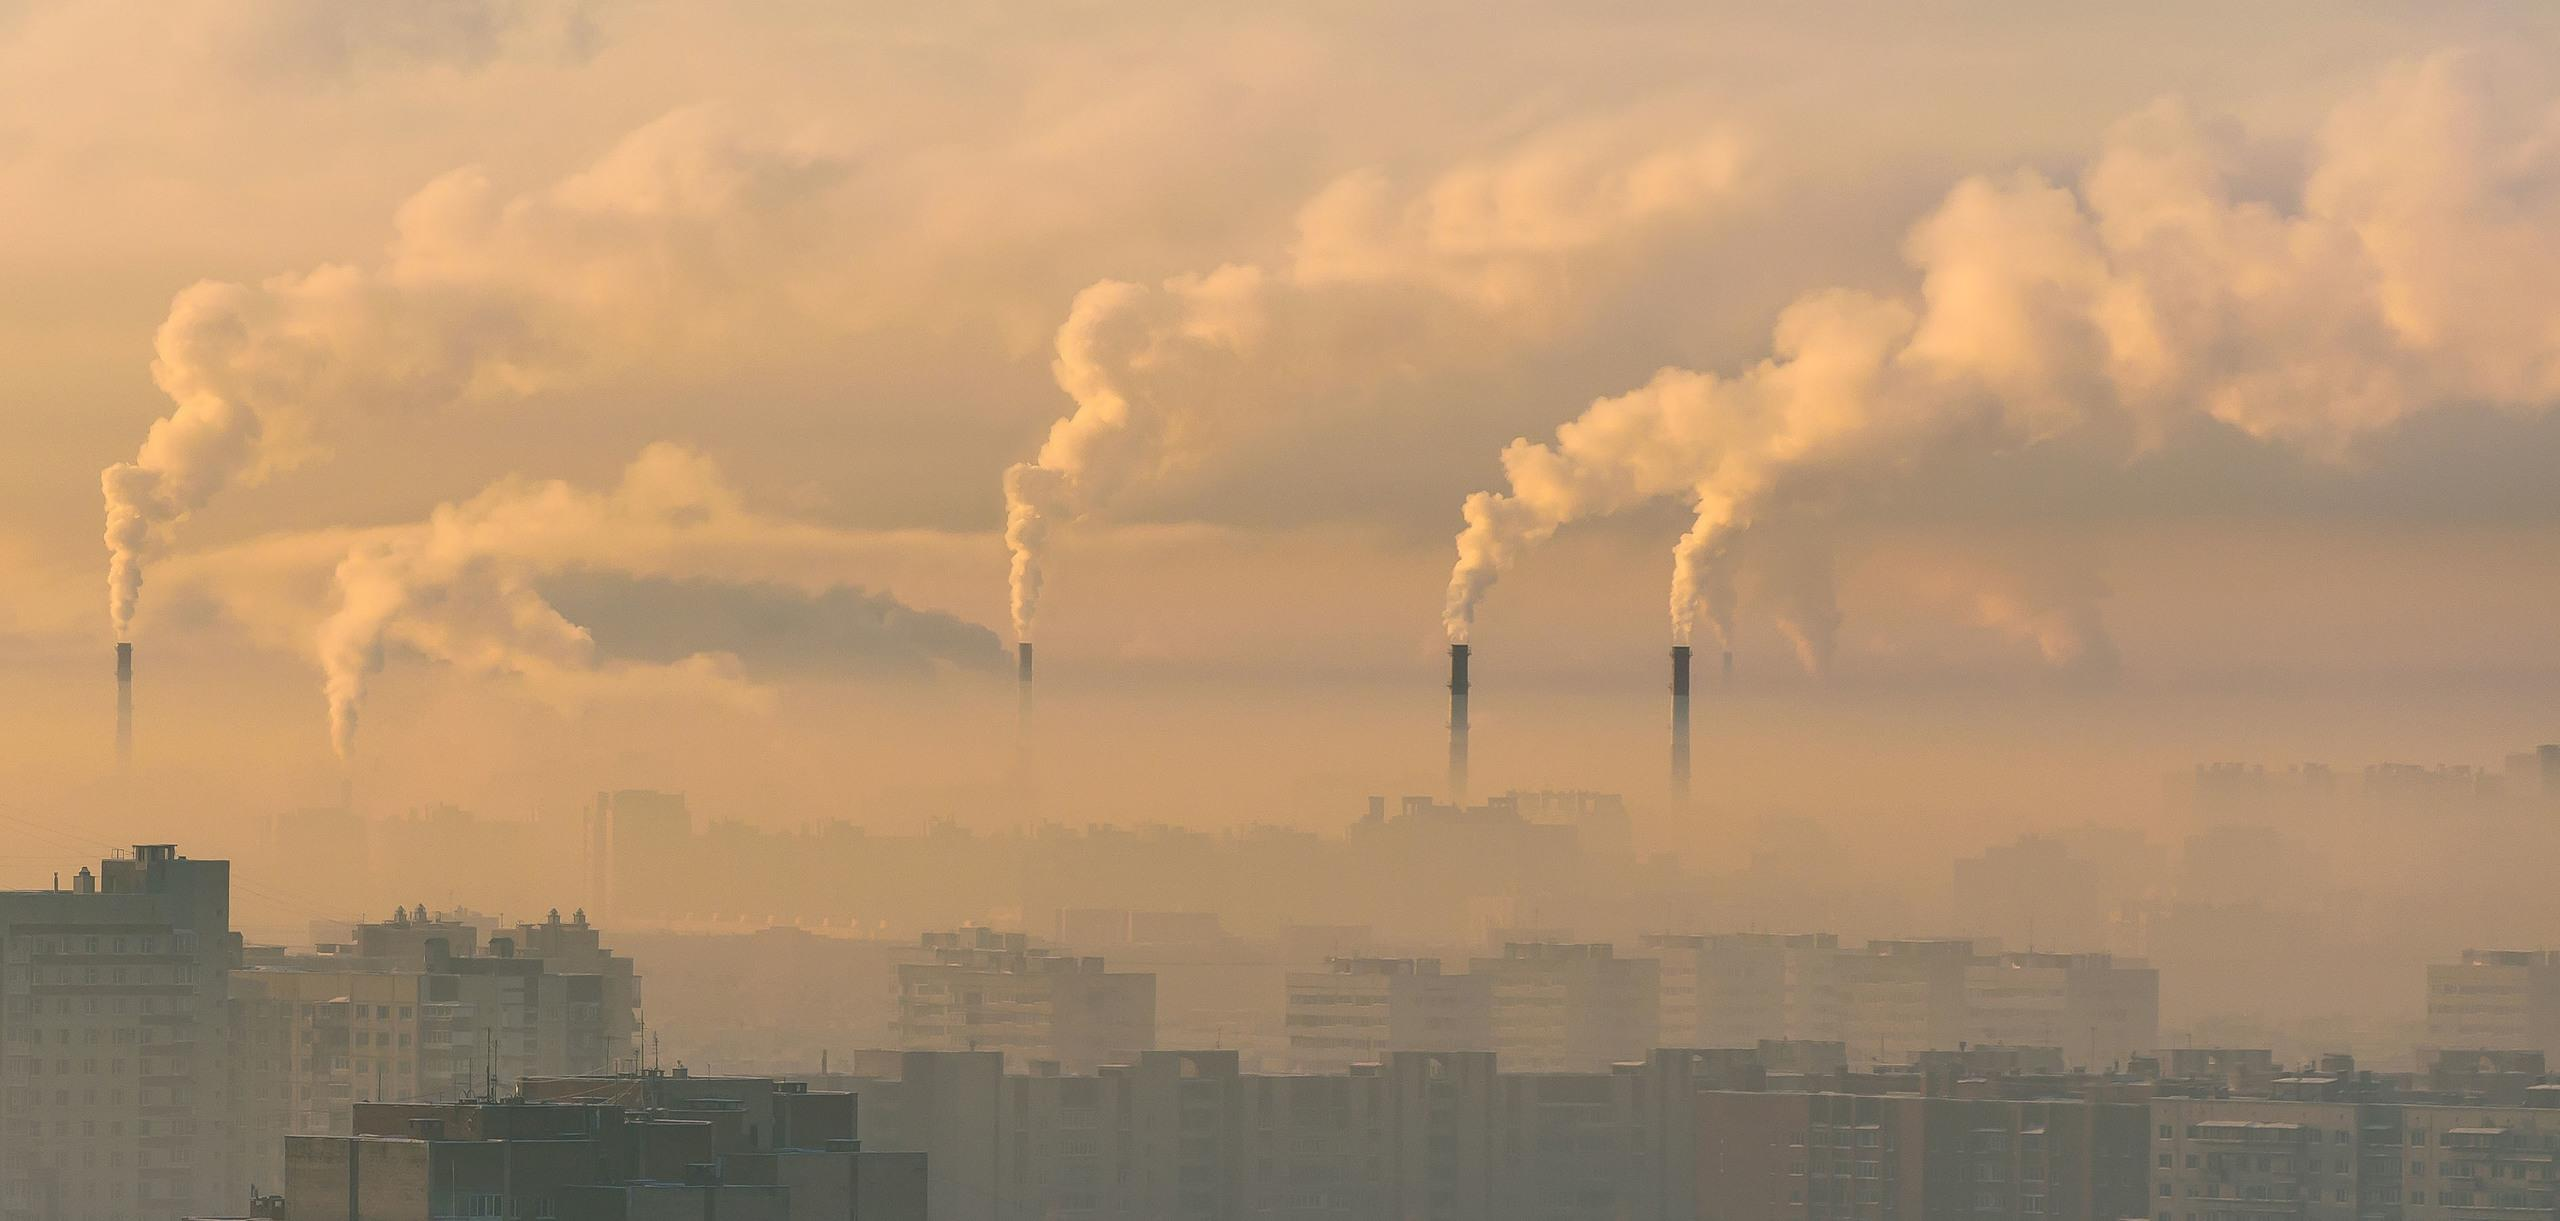 An urban skyline with pollution going into the atmosphere from the chimneys at a power plant